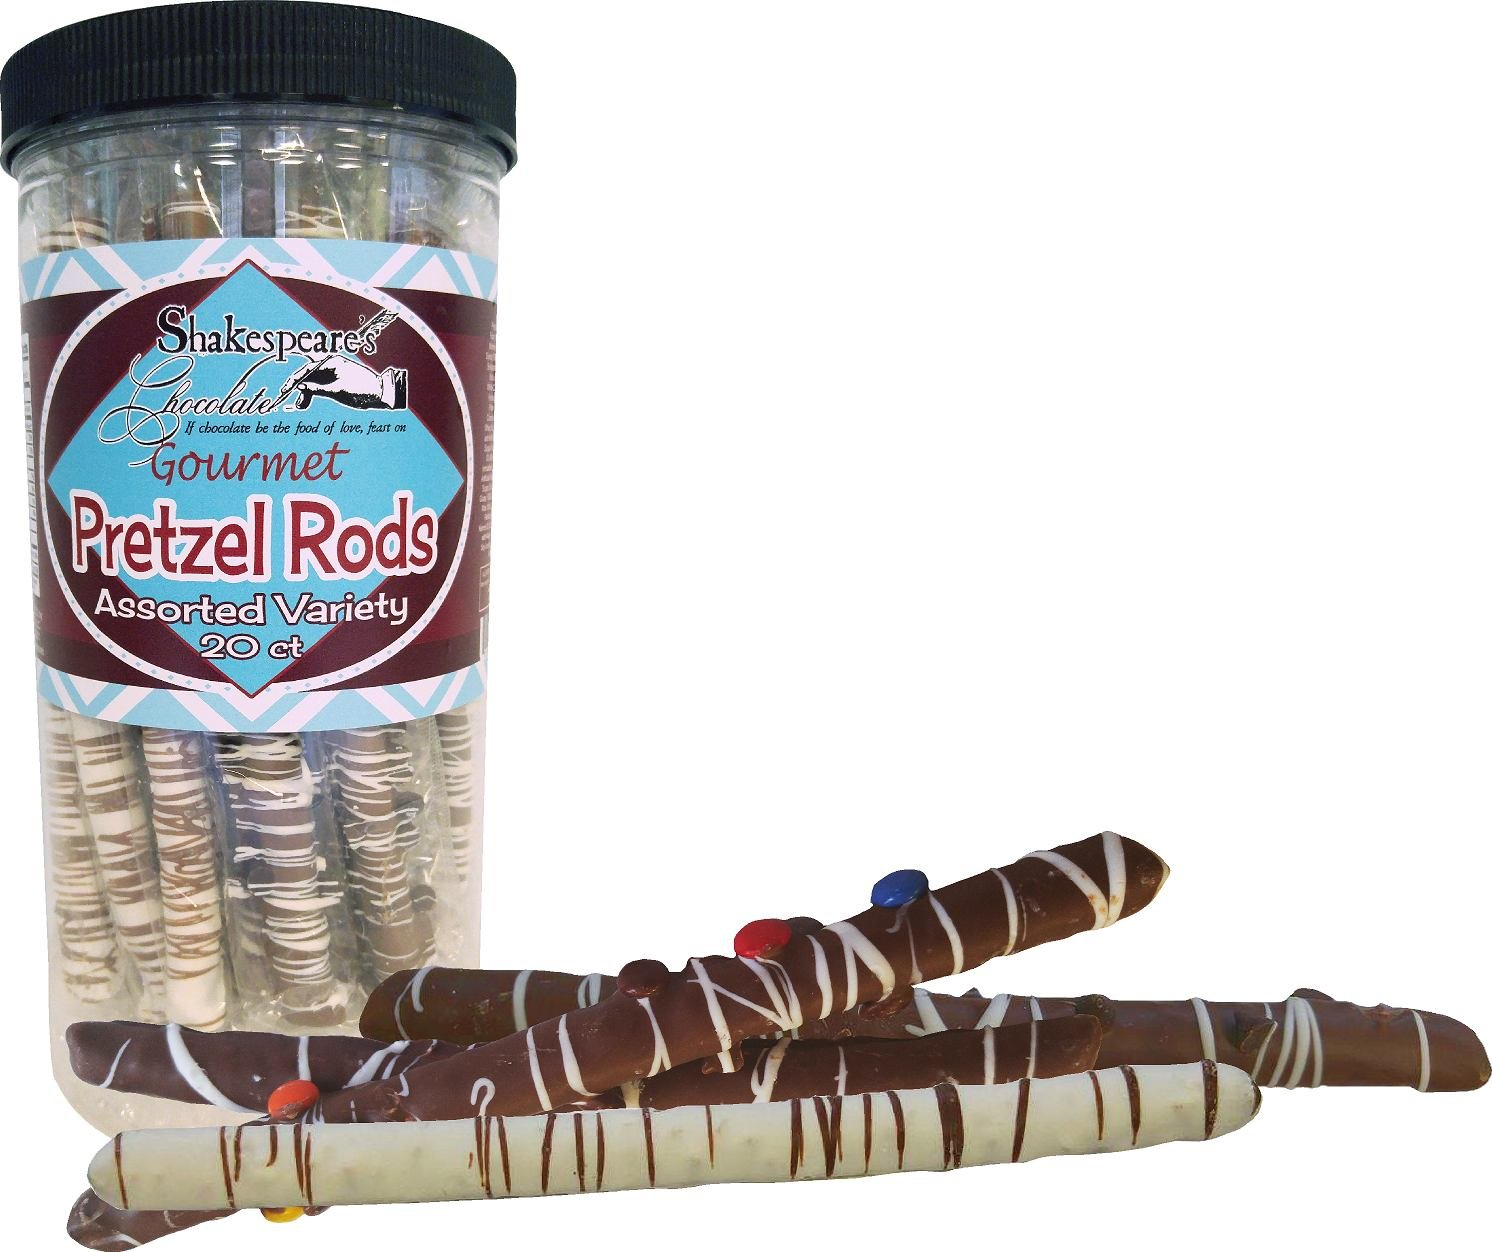 Shakespeare's Chocolate Assorted Pretzel Rods - 20 count